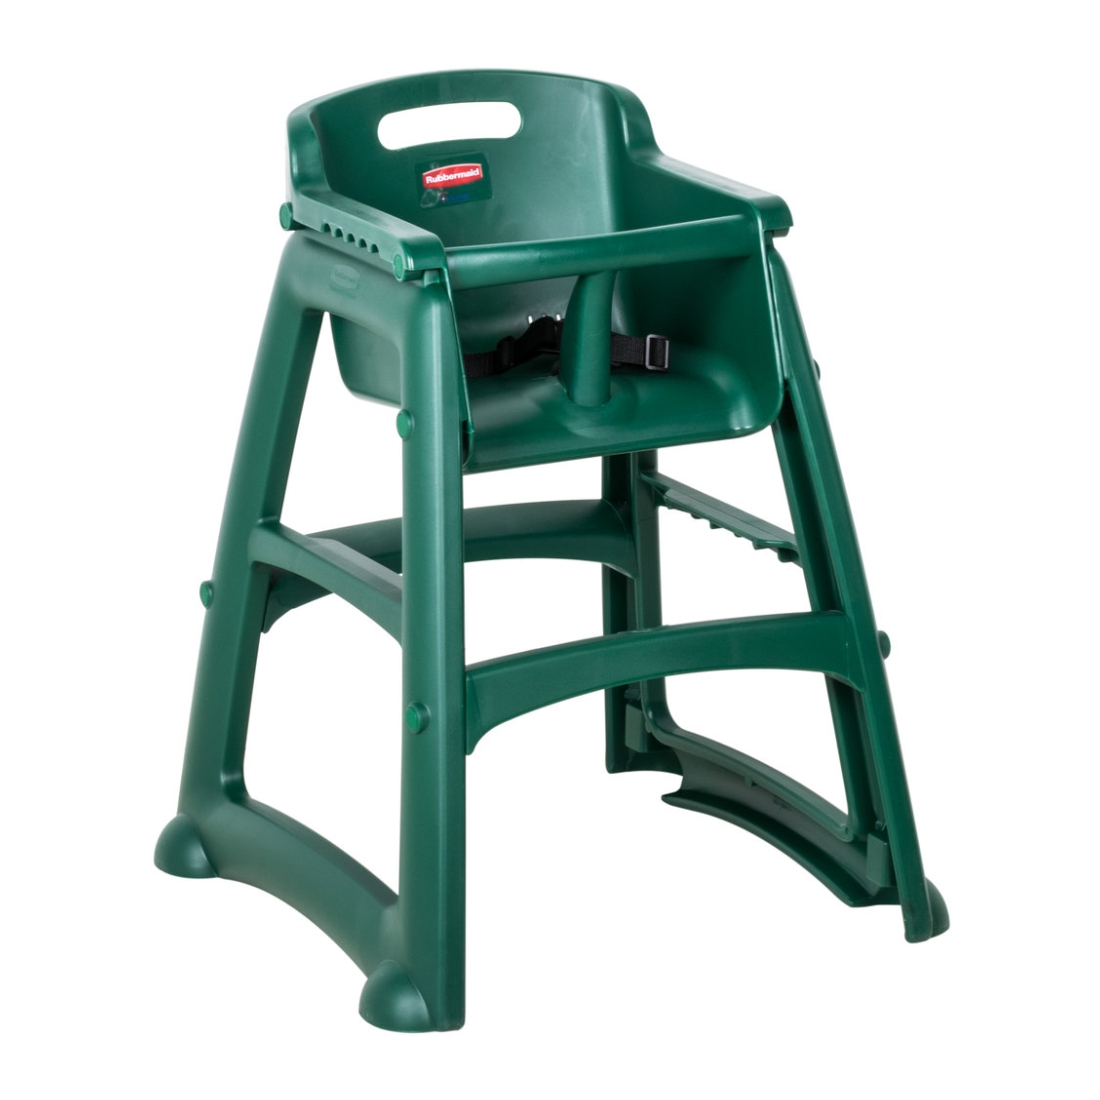 Rubbermaid High Chair - Green